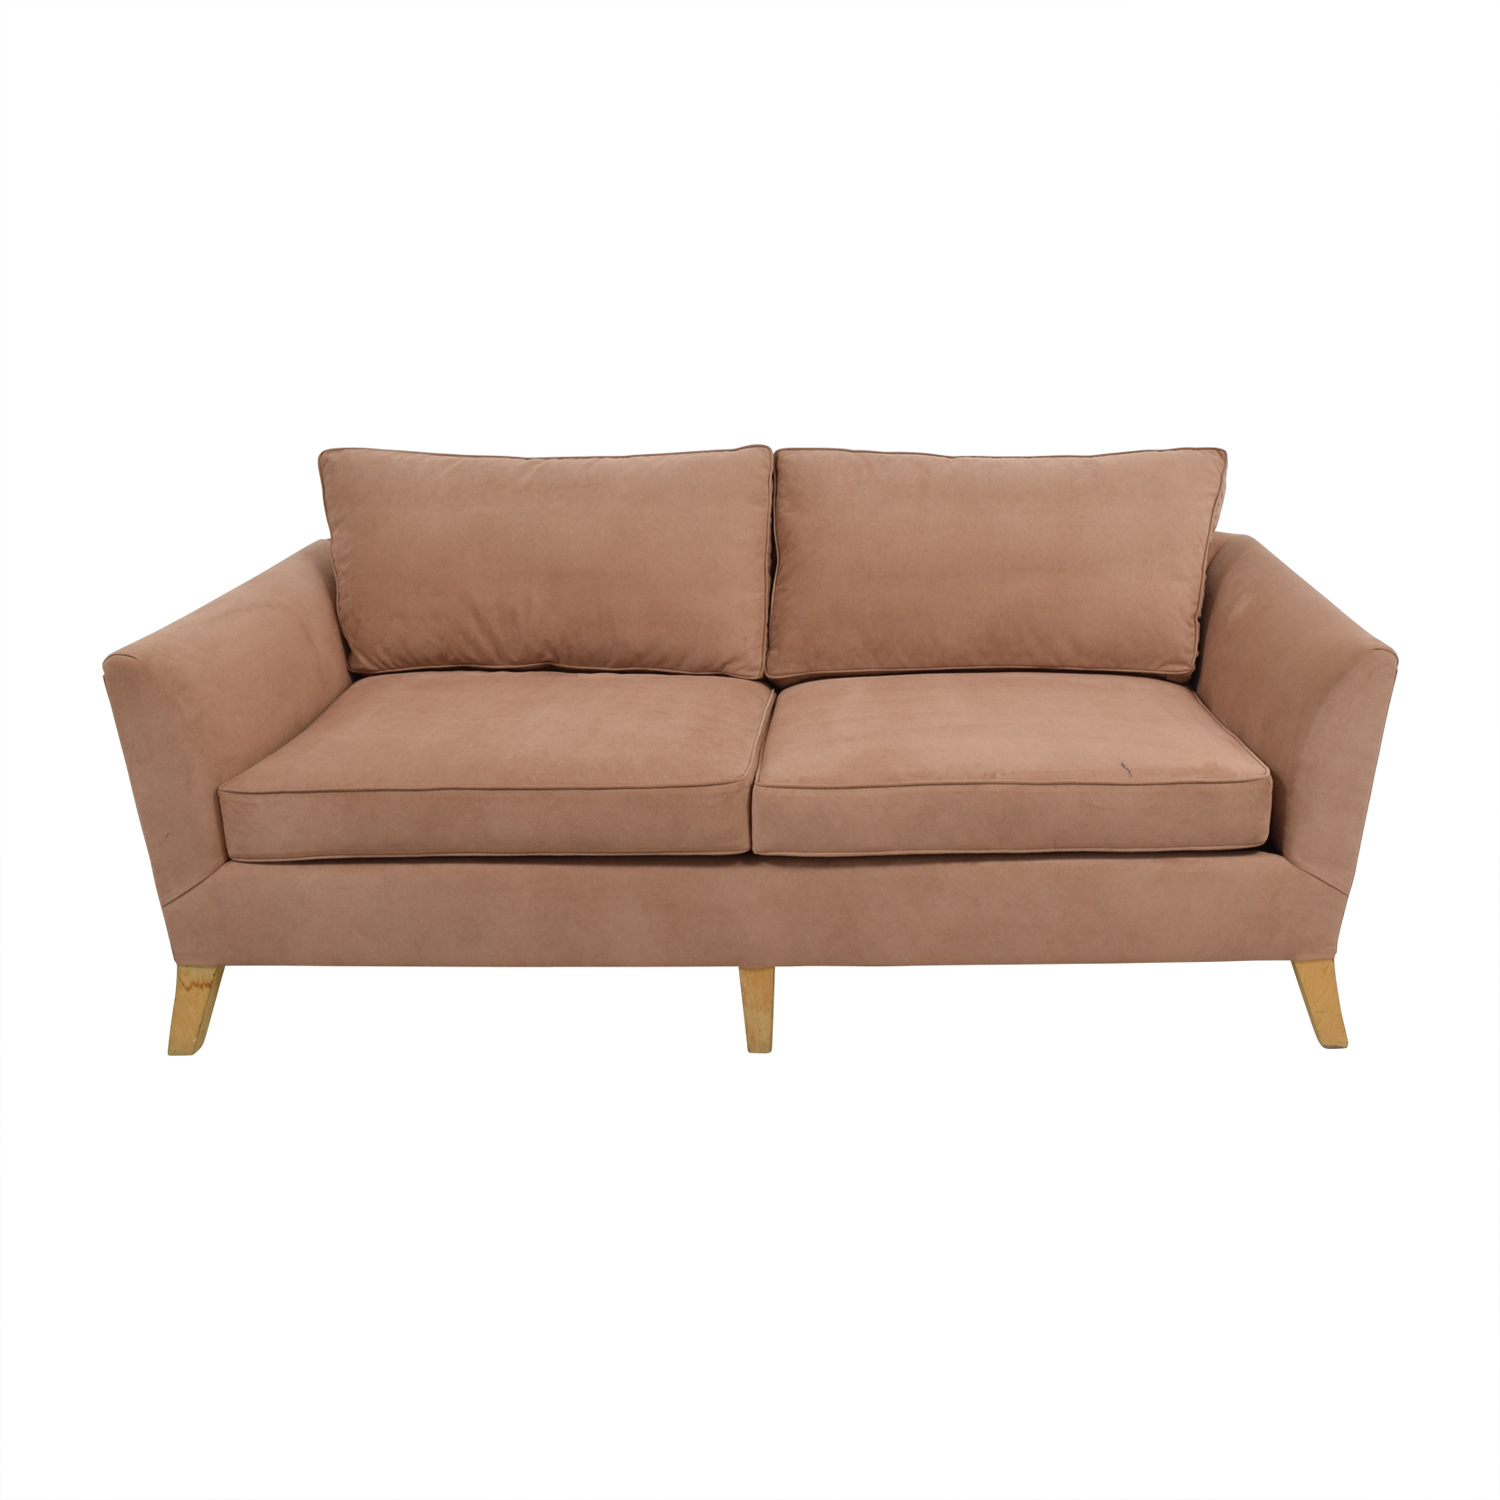 shop Furniture Masters Furniture Masters Custom Tan Two Seater Sofa online